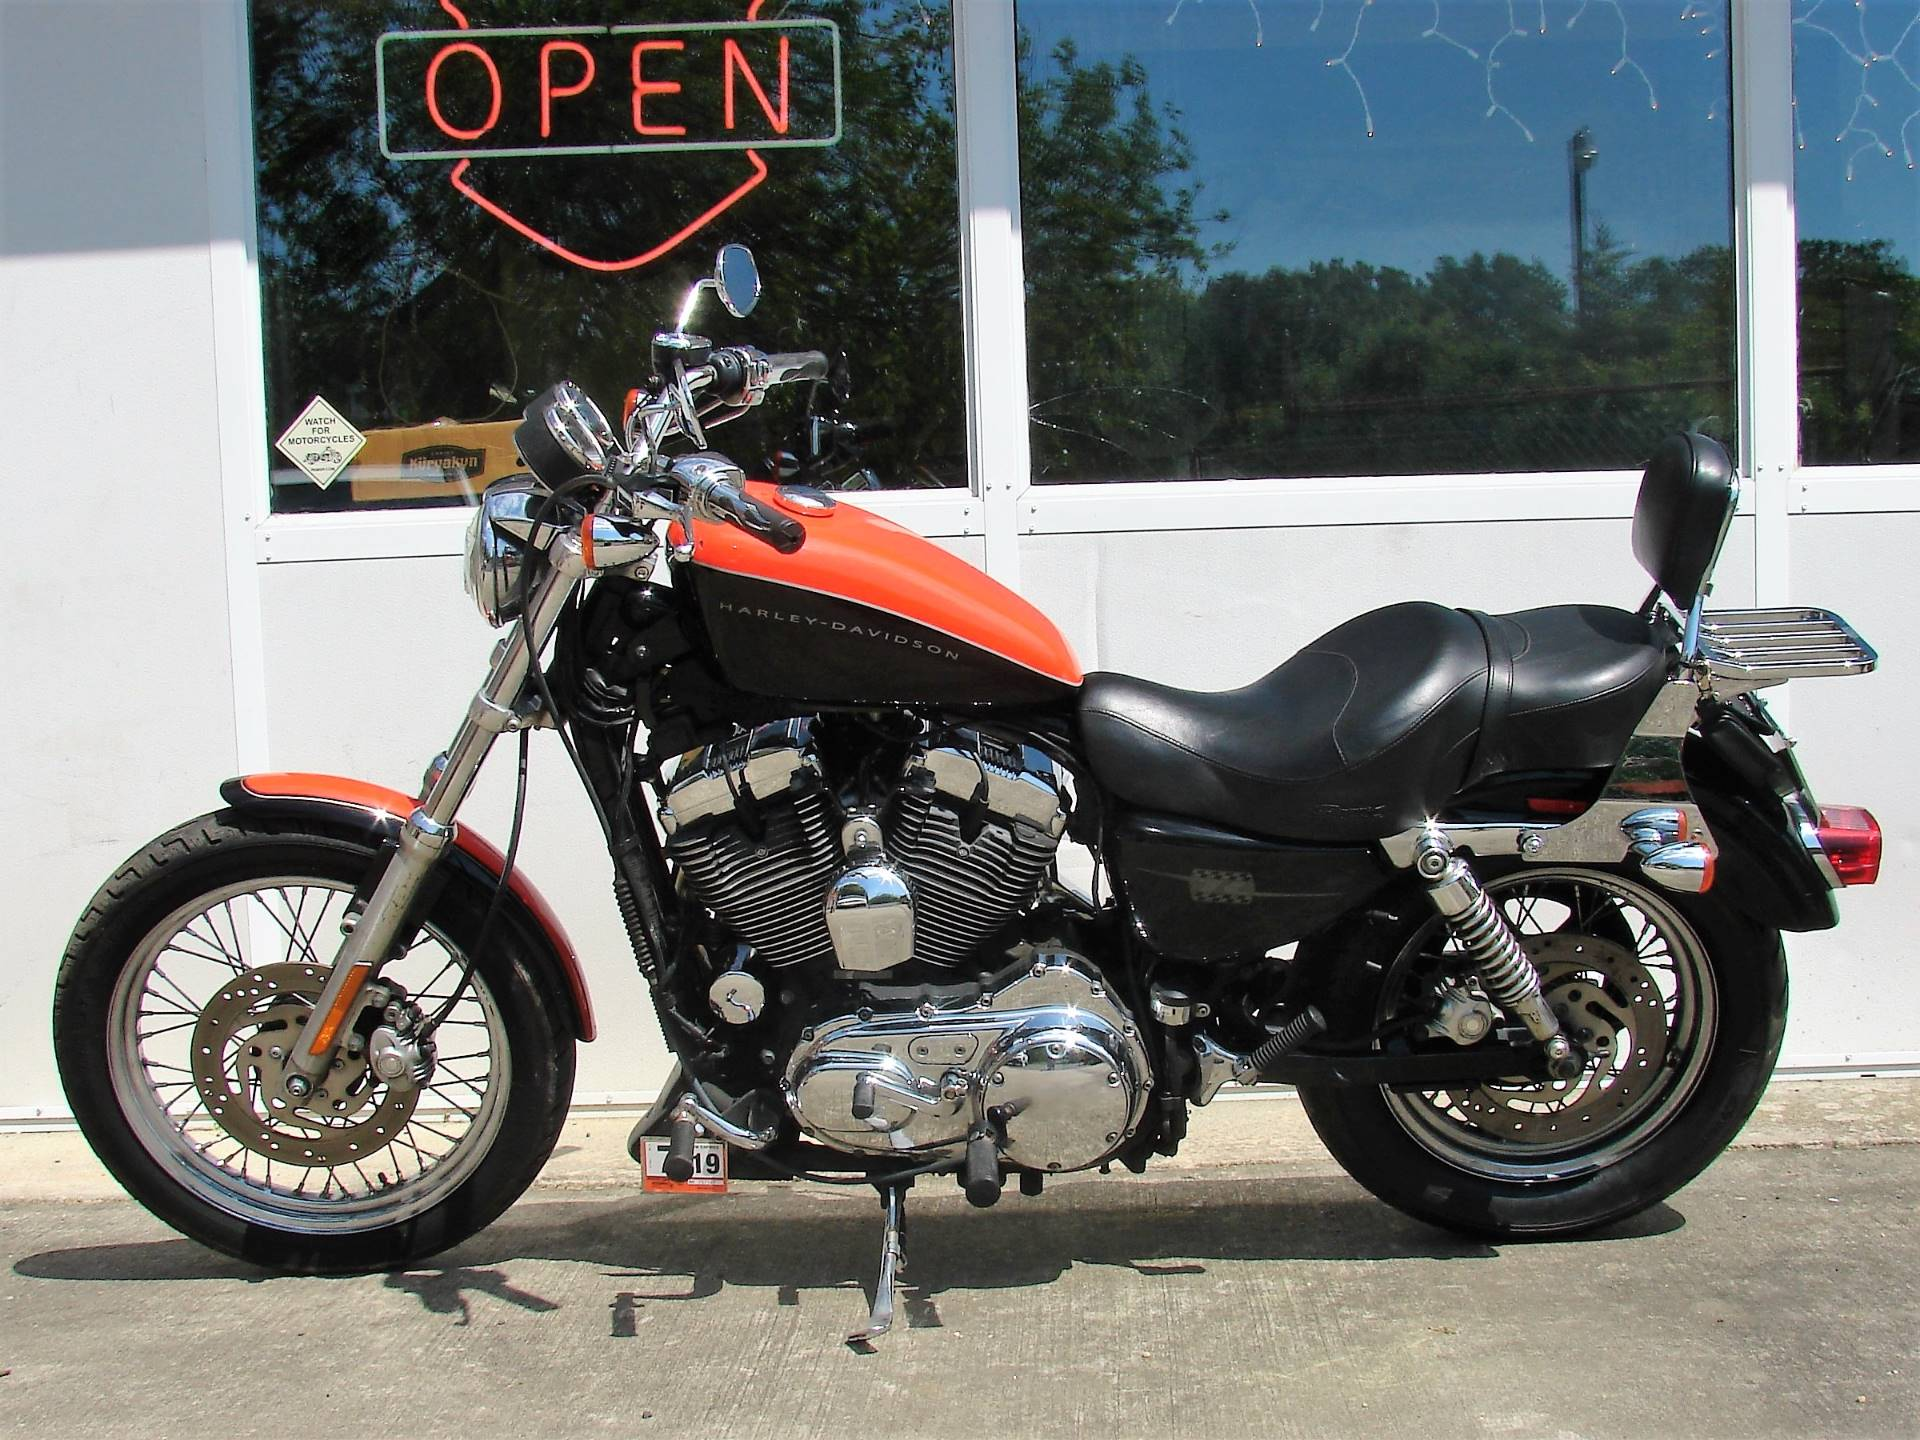 2007 Harley-Davidson 1200 Sportster XL 50  (50th Anniversary Edition) in Williamstown, New Jersey - Photo 6